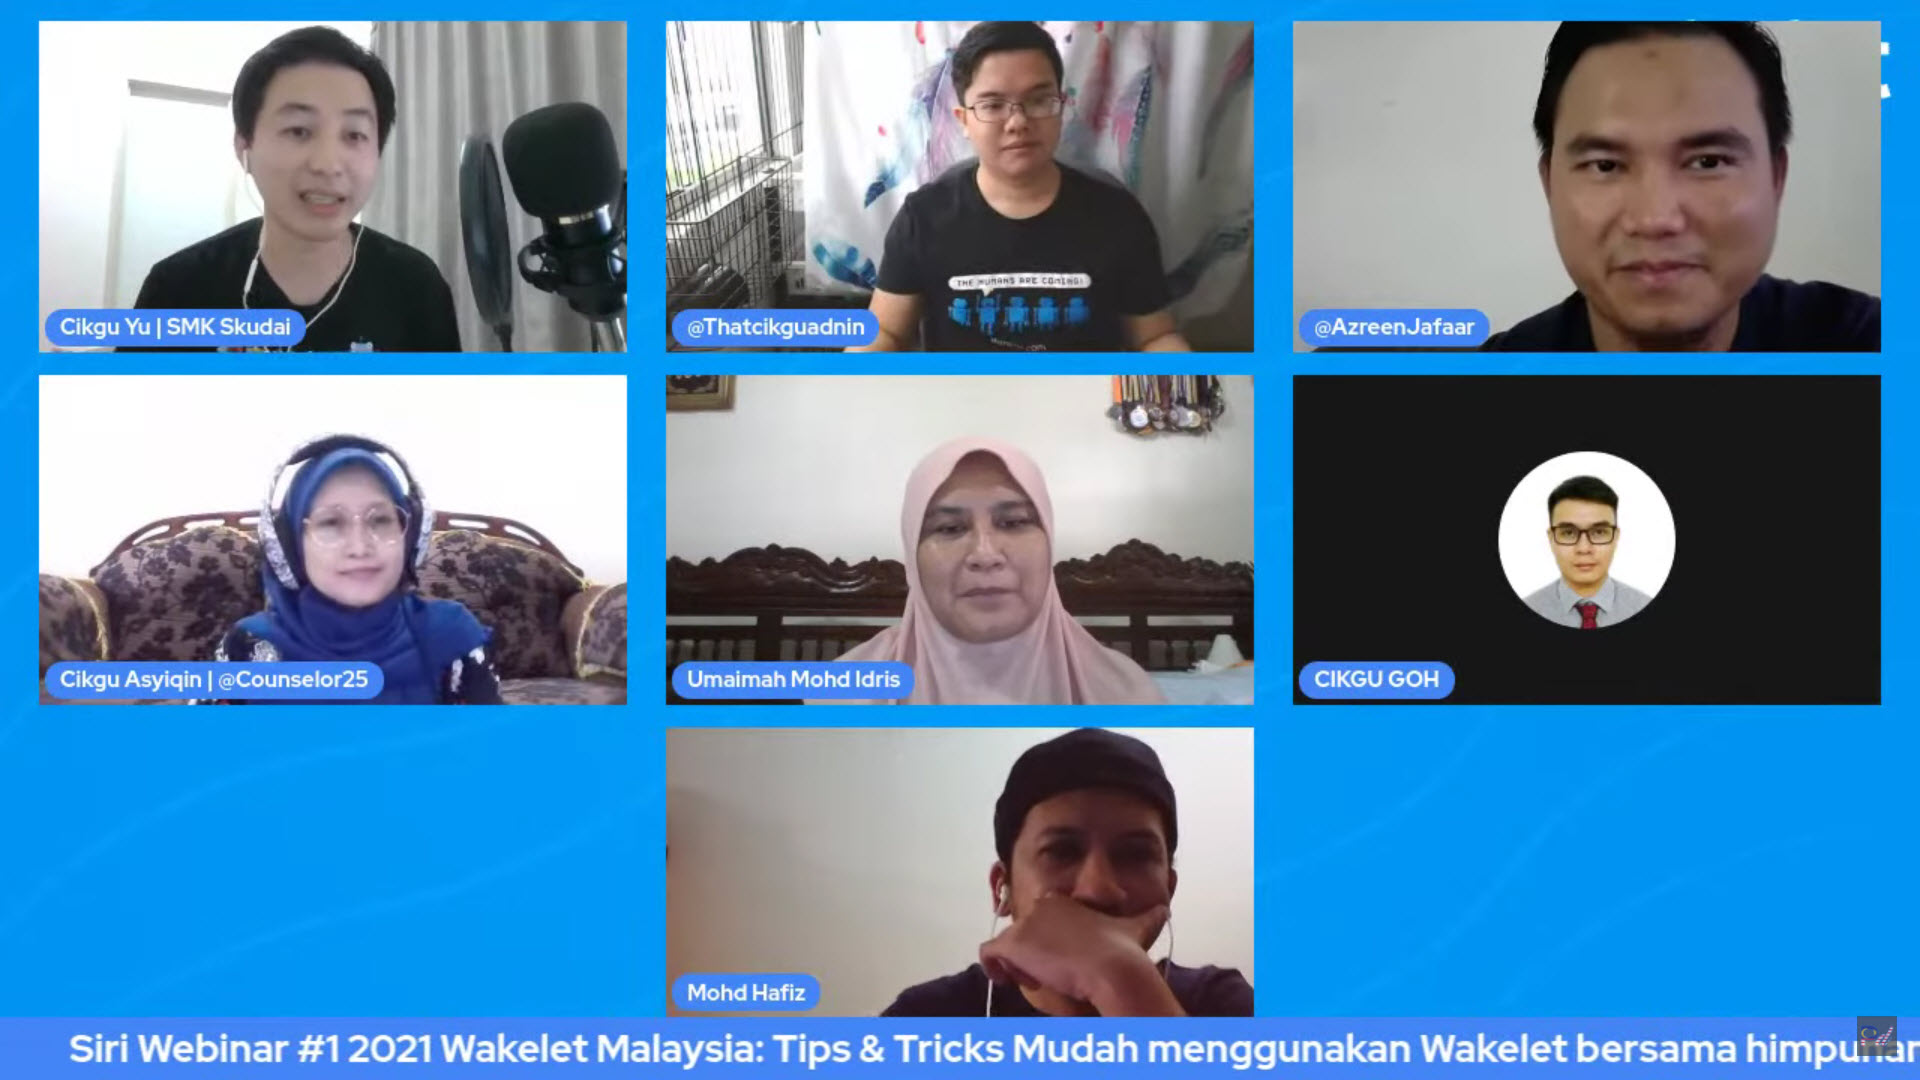 Spice Up Wakelet Training Sessions with Kahoot! - Wakelet Malaysia's First Webinar - Wakelet Ambassador MY